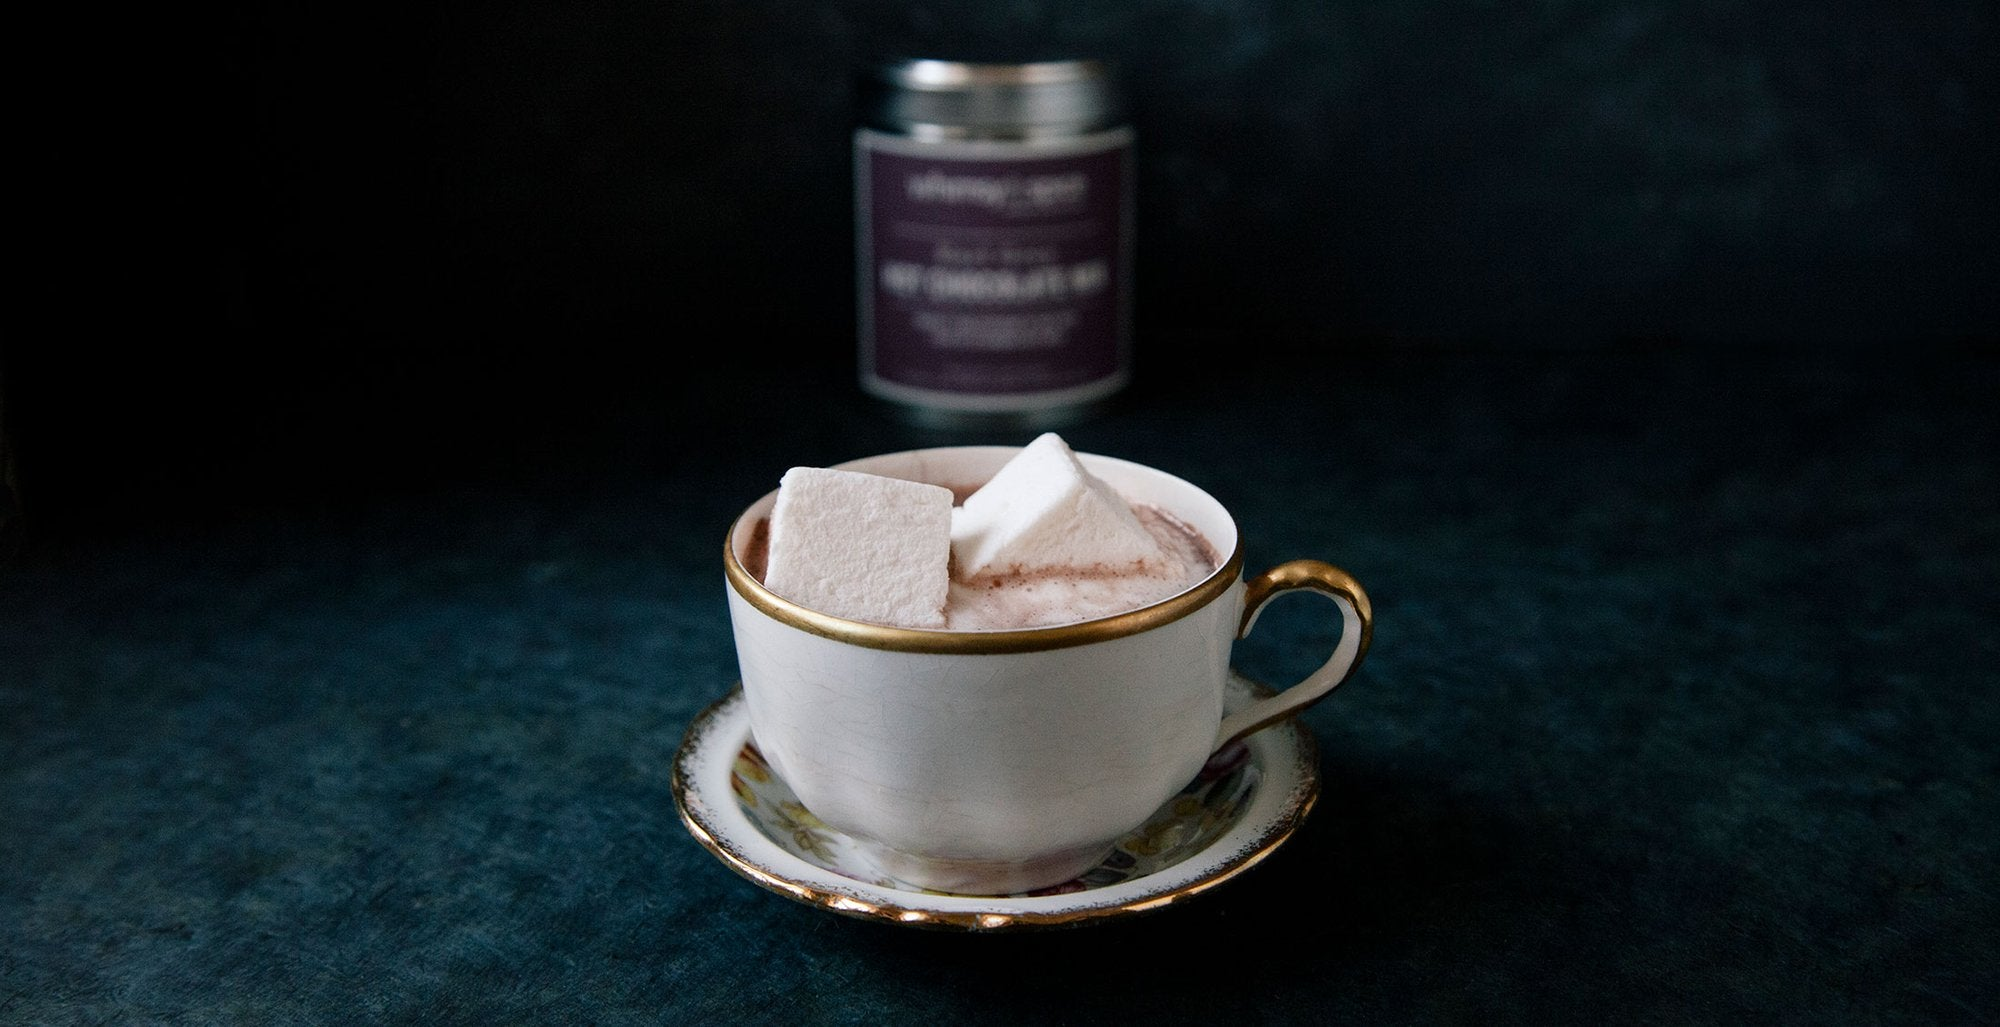 Whimsy & Spice hot chocolate mixes